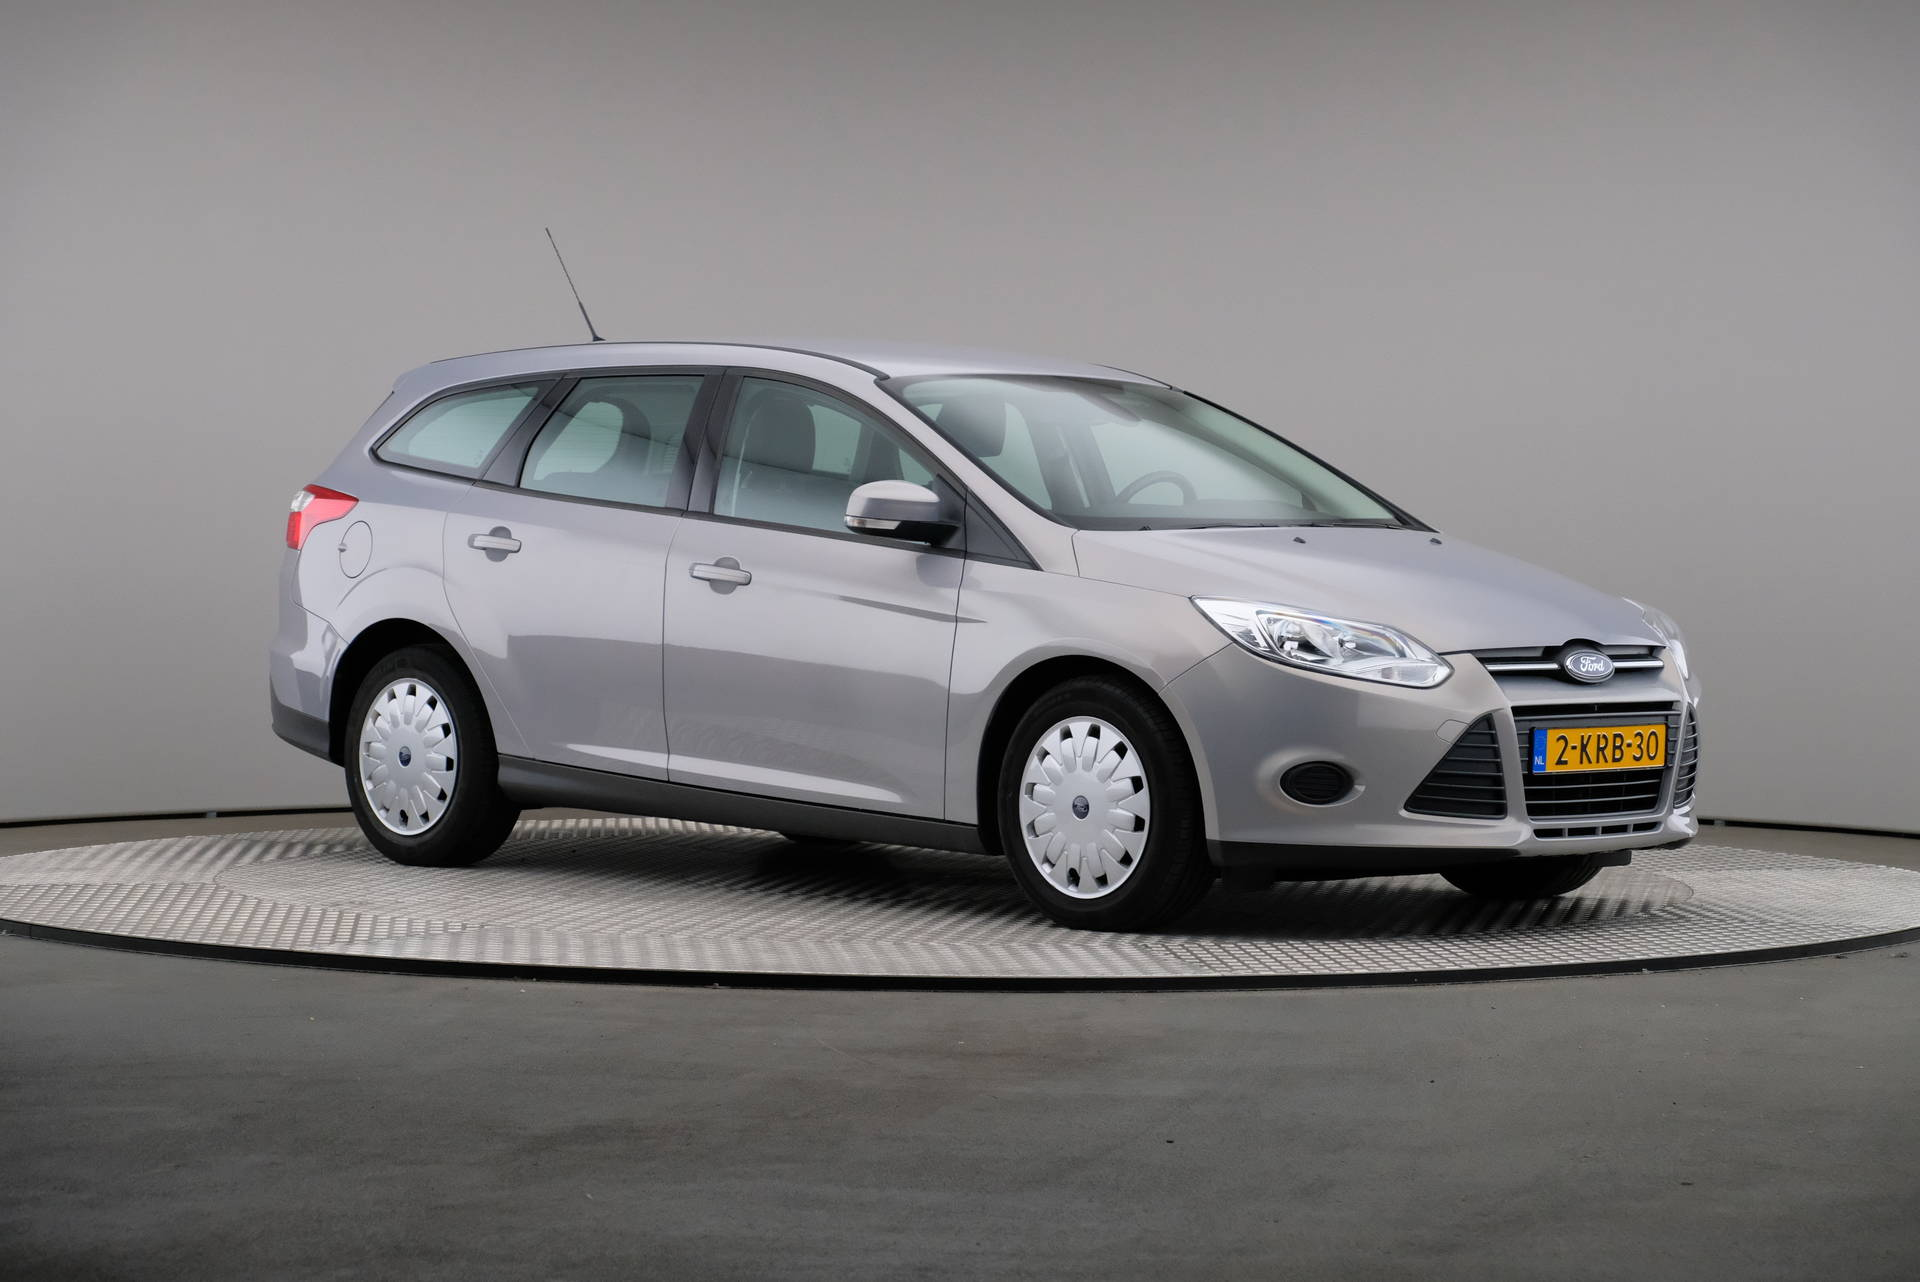 Ford Focus Wagon 1.6 TDCi ECOnetic Lease Trend, Navigatie, 360-image28